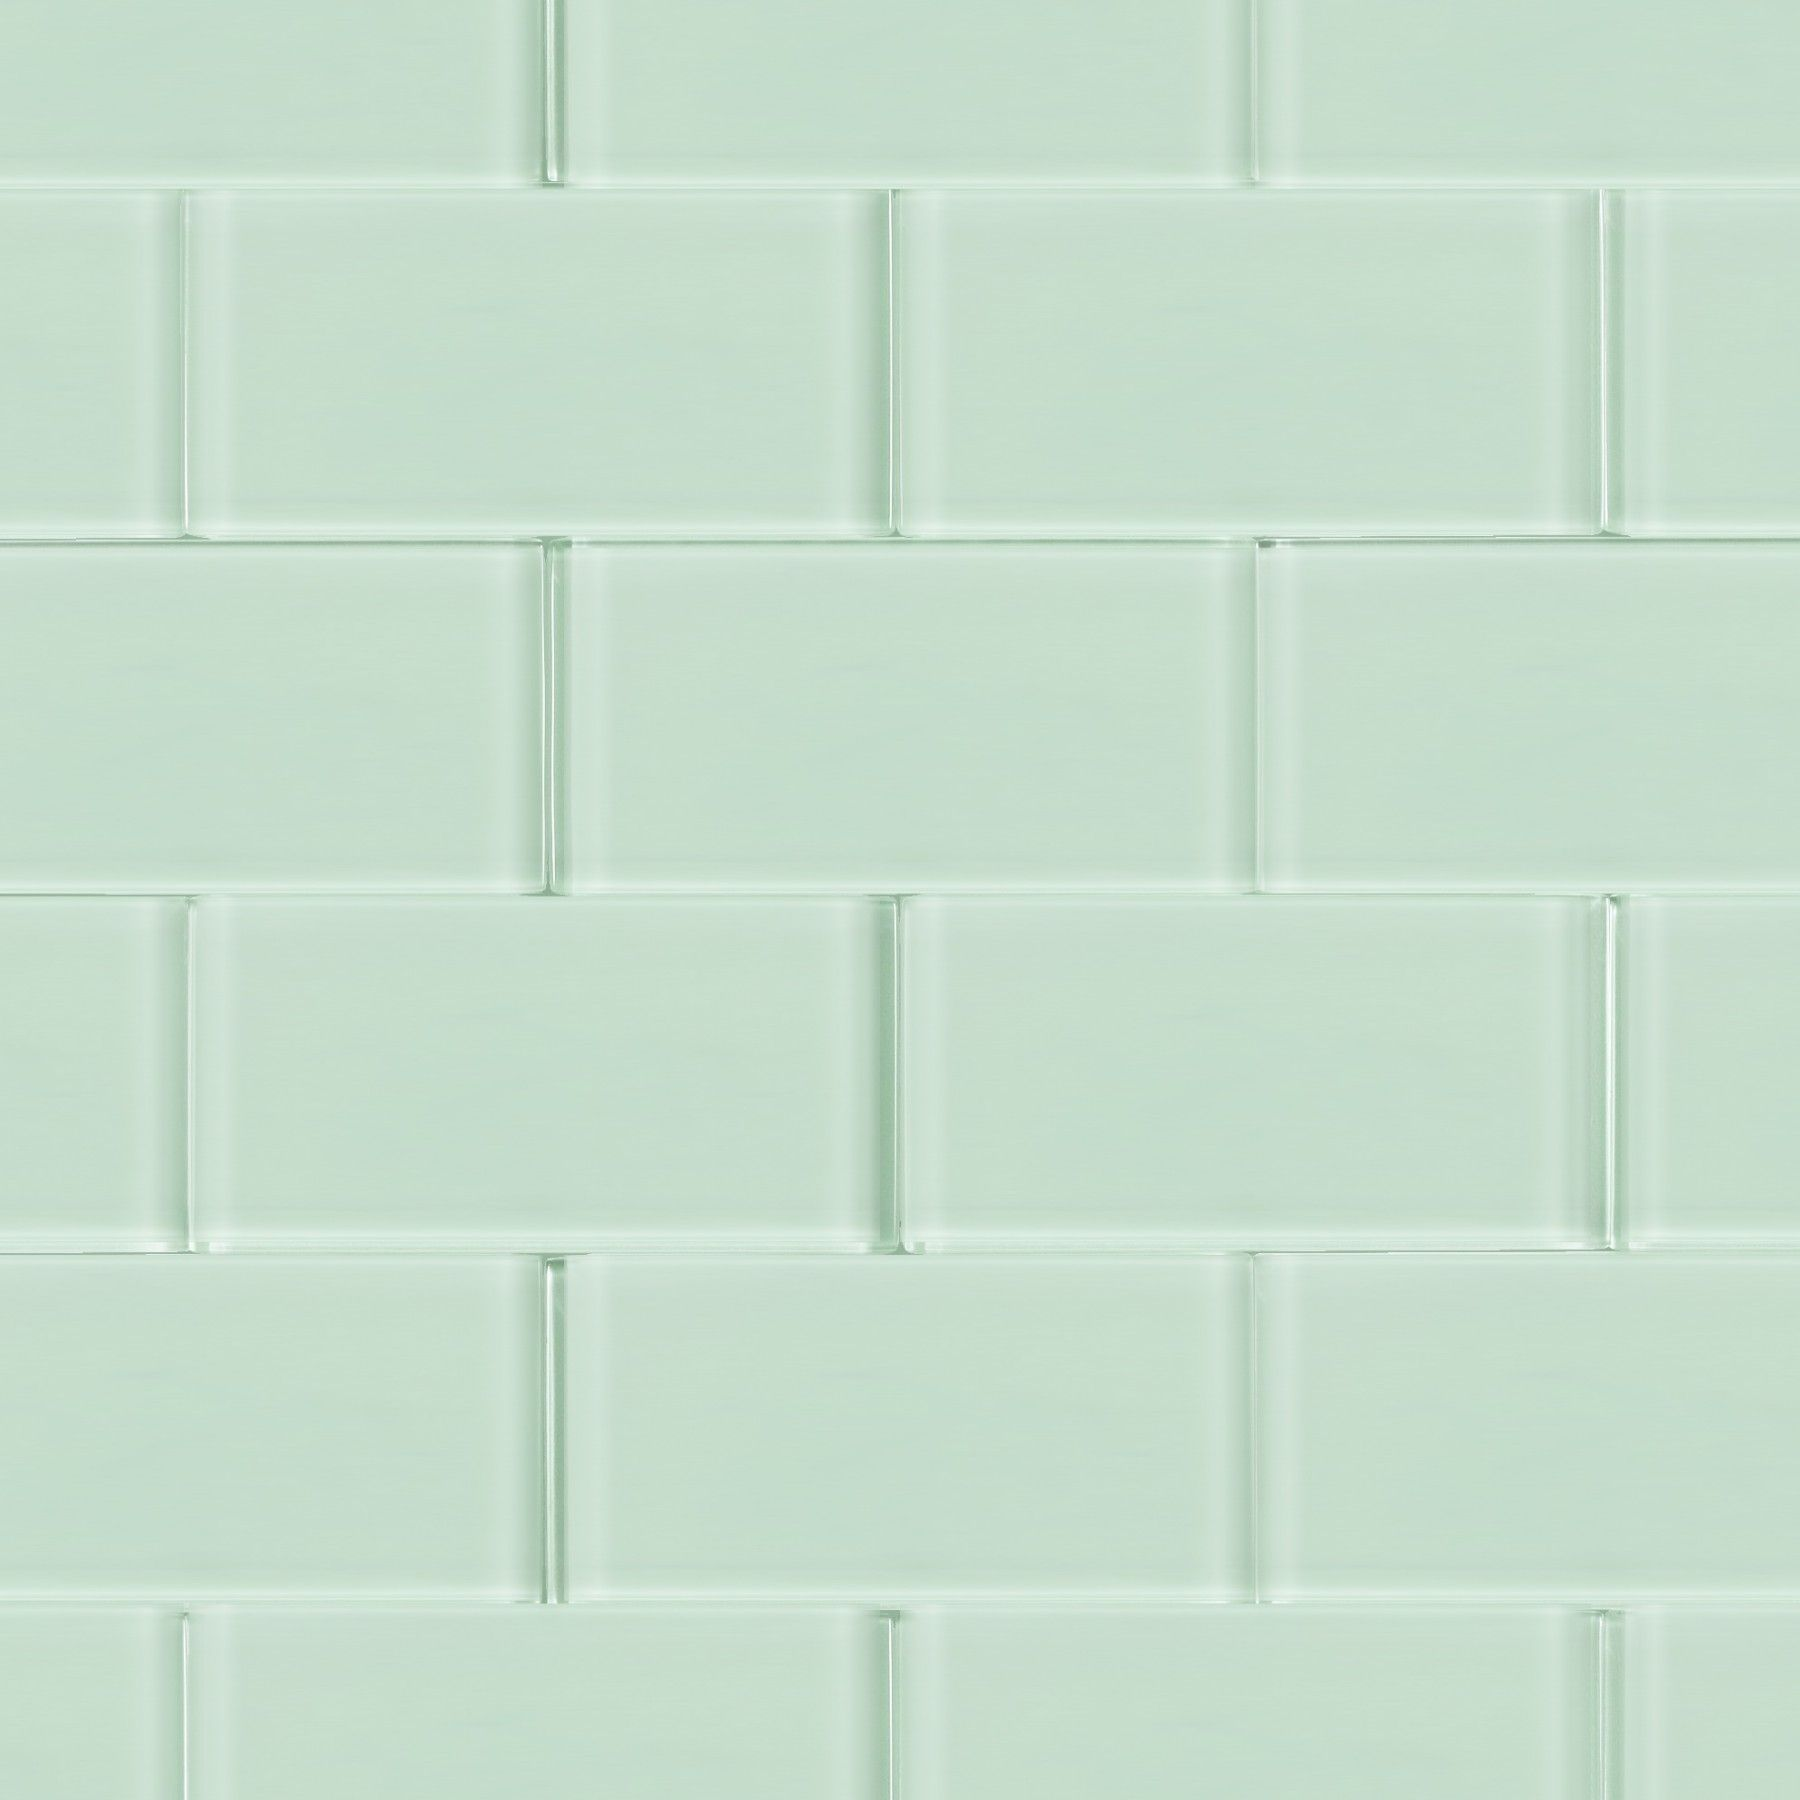 For Loft Seafoam Frosted 3 X 6 Gl Tiles At Tilebar